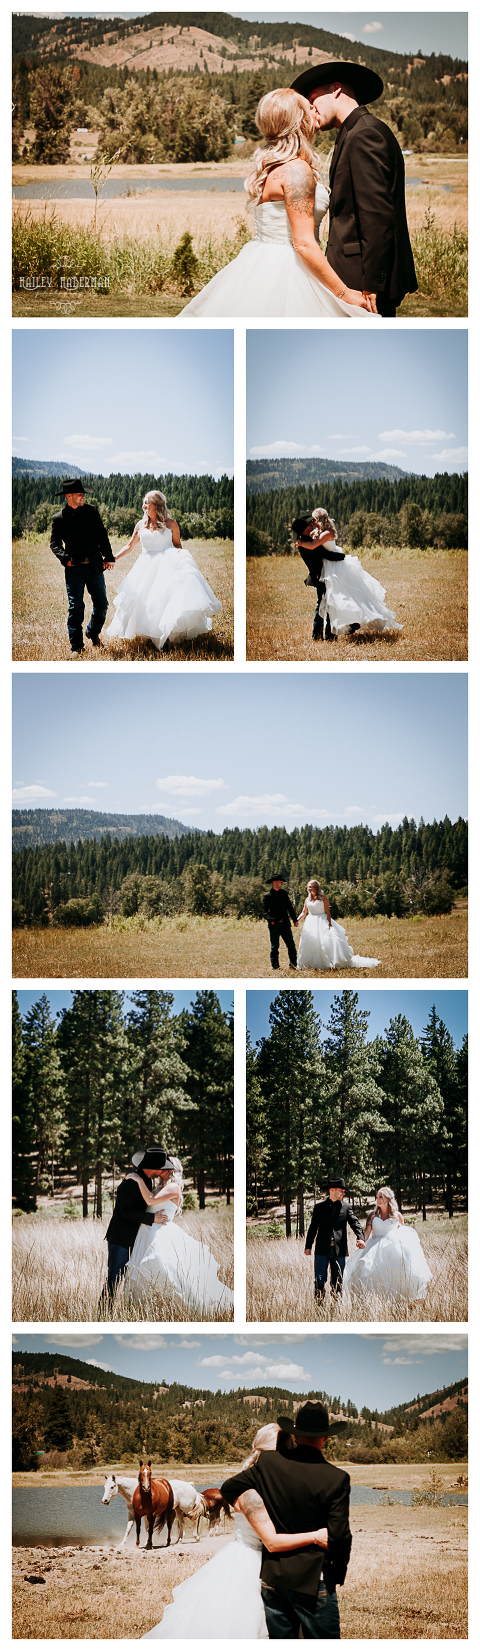 Bride and Groom portraits,Ryan and Amber married at The Cattle barn in Cle Elum, WA, photographed by Hailey Haberman Ellensburg Wedding Photographer